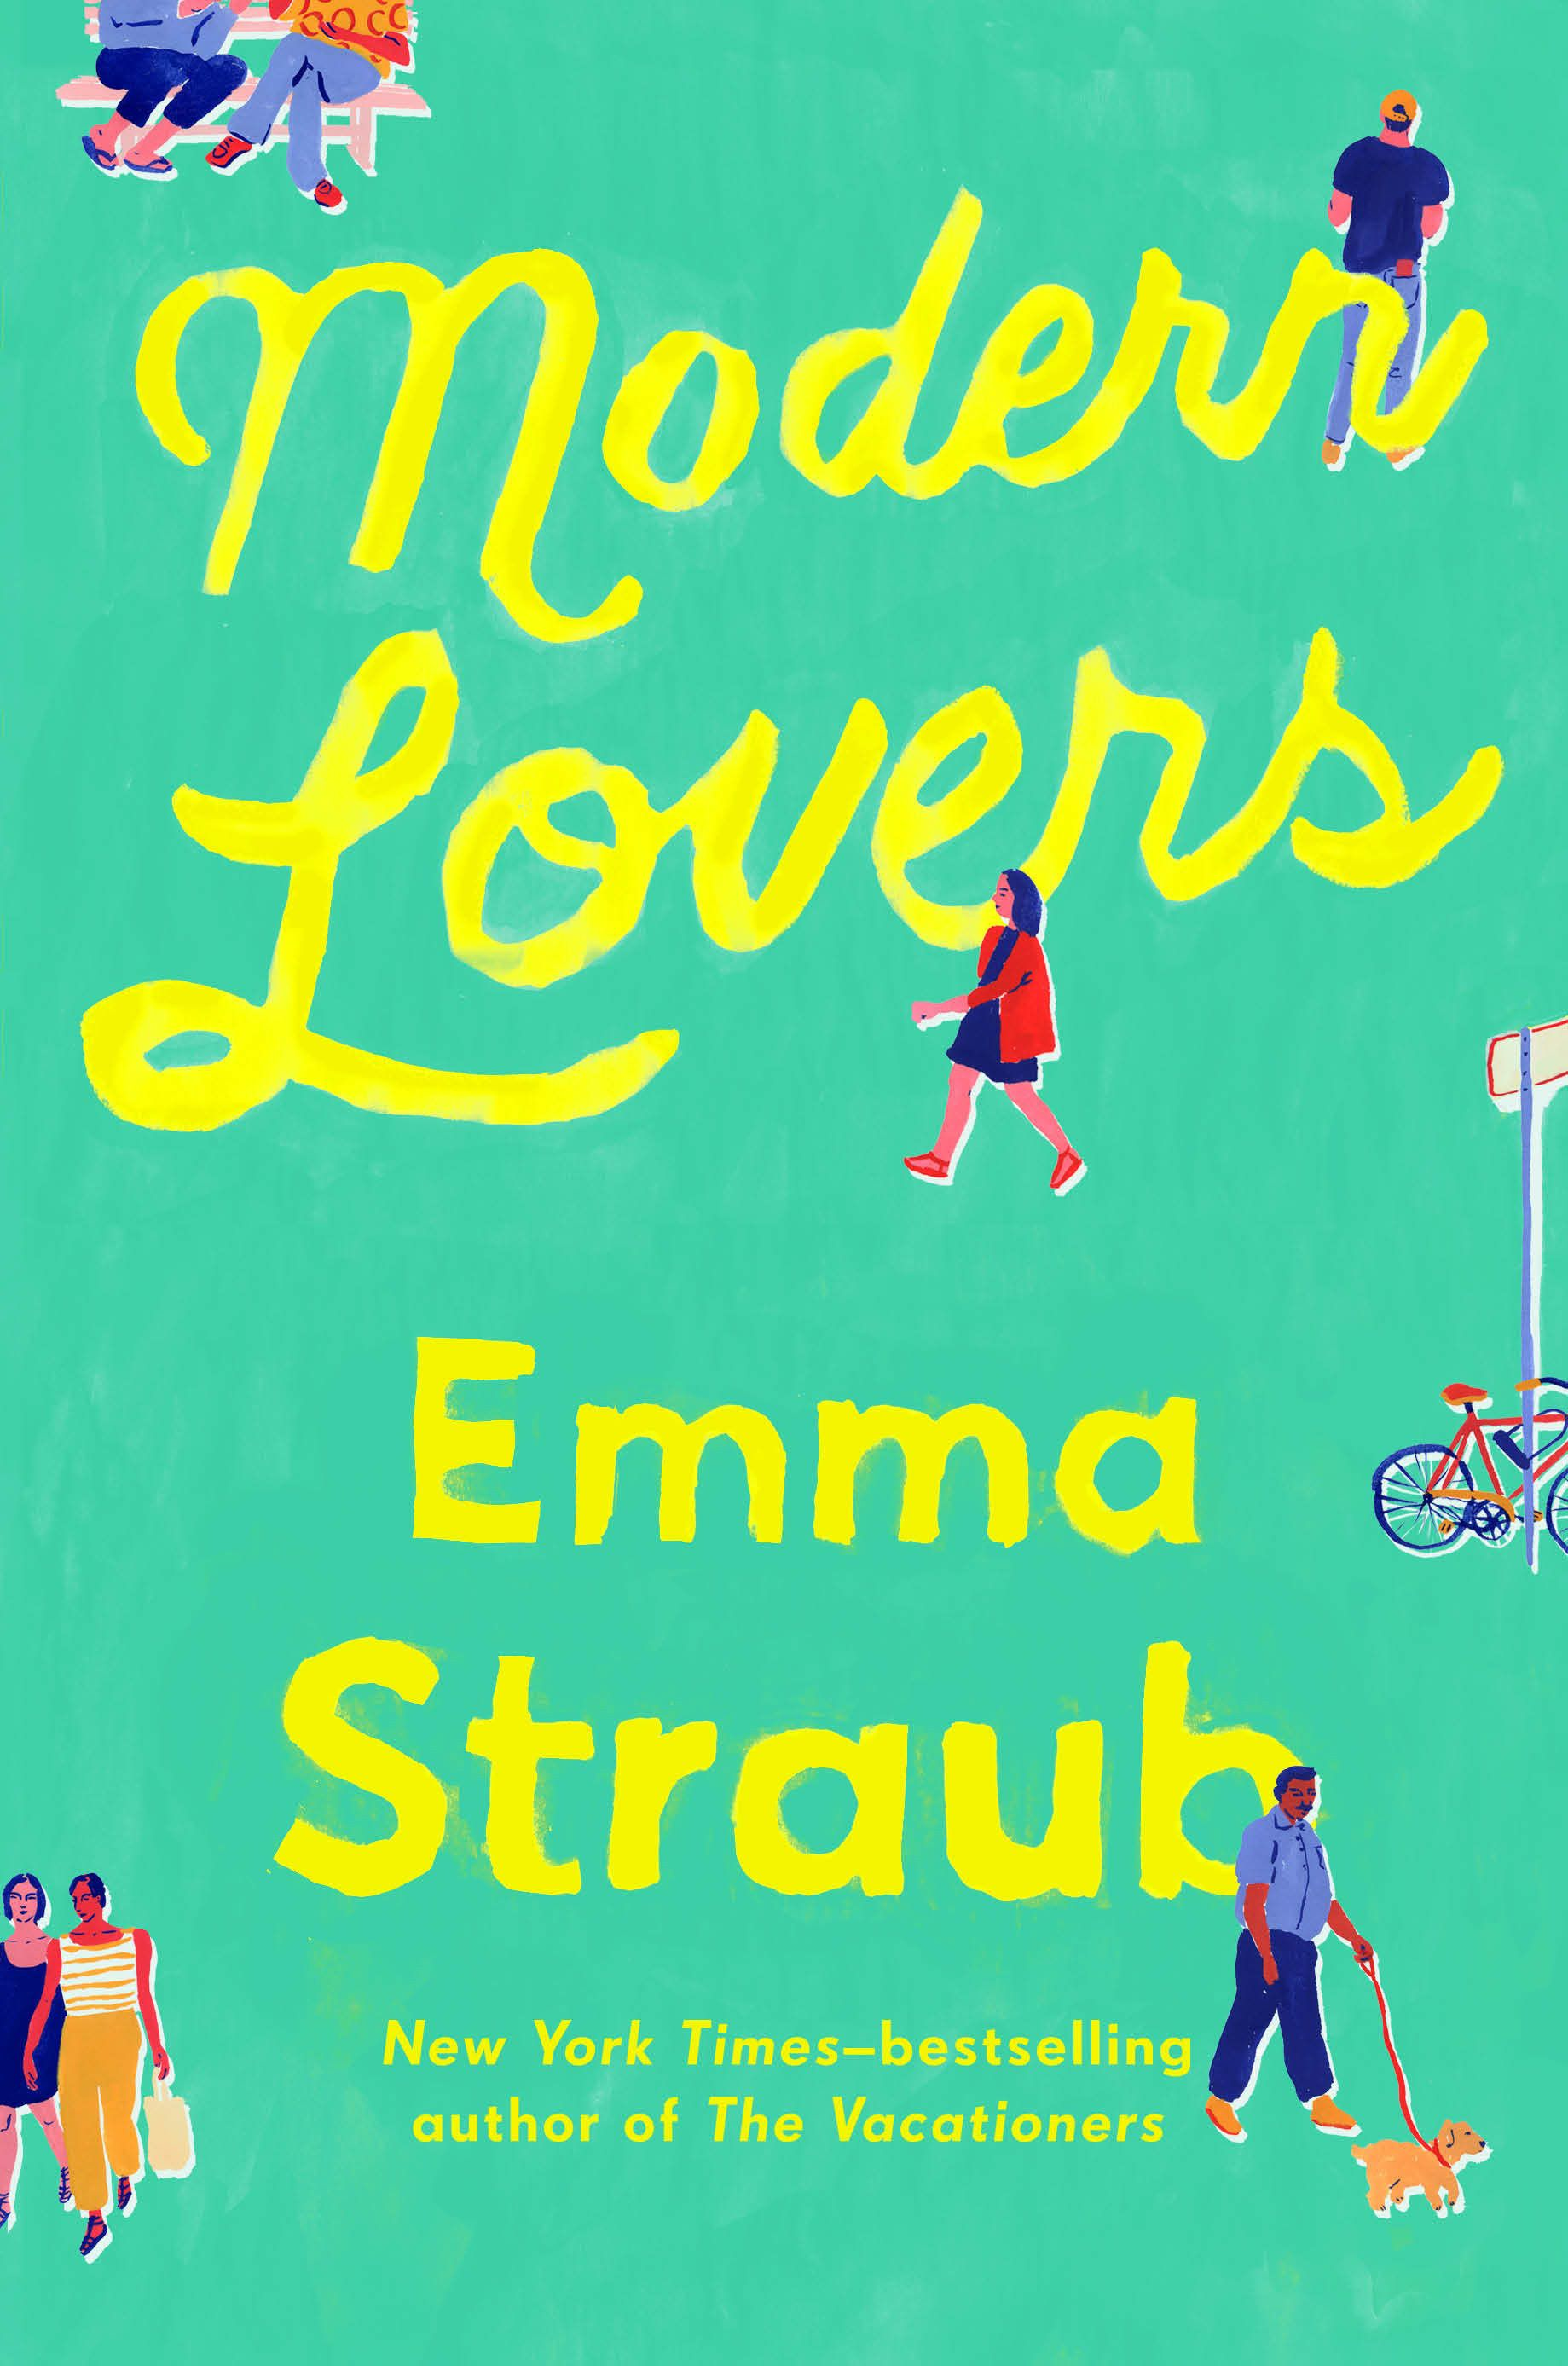 "<p>Former band mates Elizabeth, Andrew and Zoe are all married with kids and live on the same block in gentrified Brooklyn. But as they watch their children grow older, the parents realize they're each holding onto certain youthful ambitions. Bestseller Emma Straub (<i>The Vacationers</i>) gives us an insightful look into middle age, parenthood, and the funny way that passions never fade, no matter how much time passes by.</p><p><em><i>Modern Lovers</i>, $18, <a href=""http://www.amazon.com/Modern-Lovers-Emma-Straub/dp/159463467X"" target=""_blank"">amazon.com</a>. </em></p>"